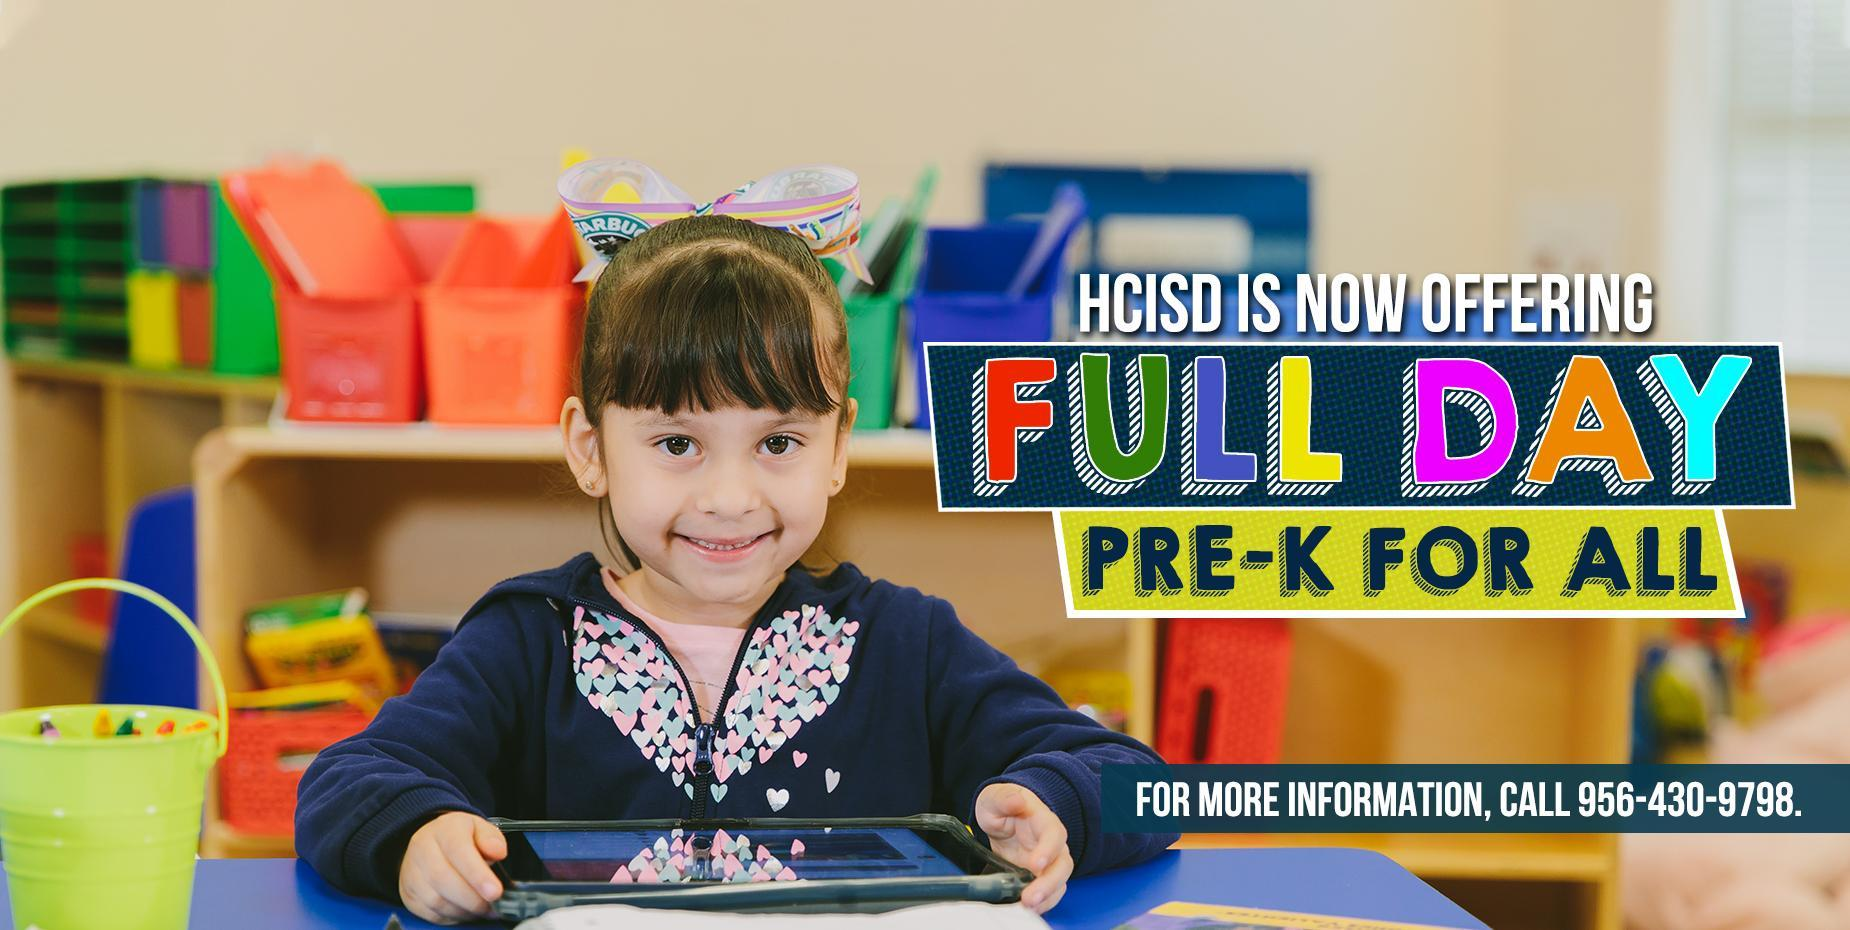 HCISD is now offering Full Day Pre-K for All